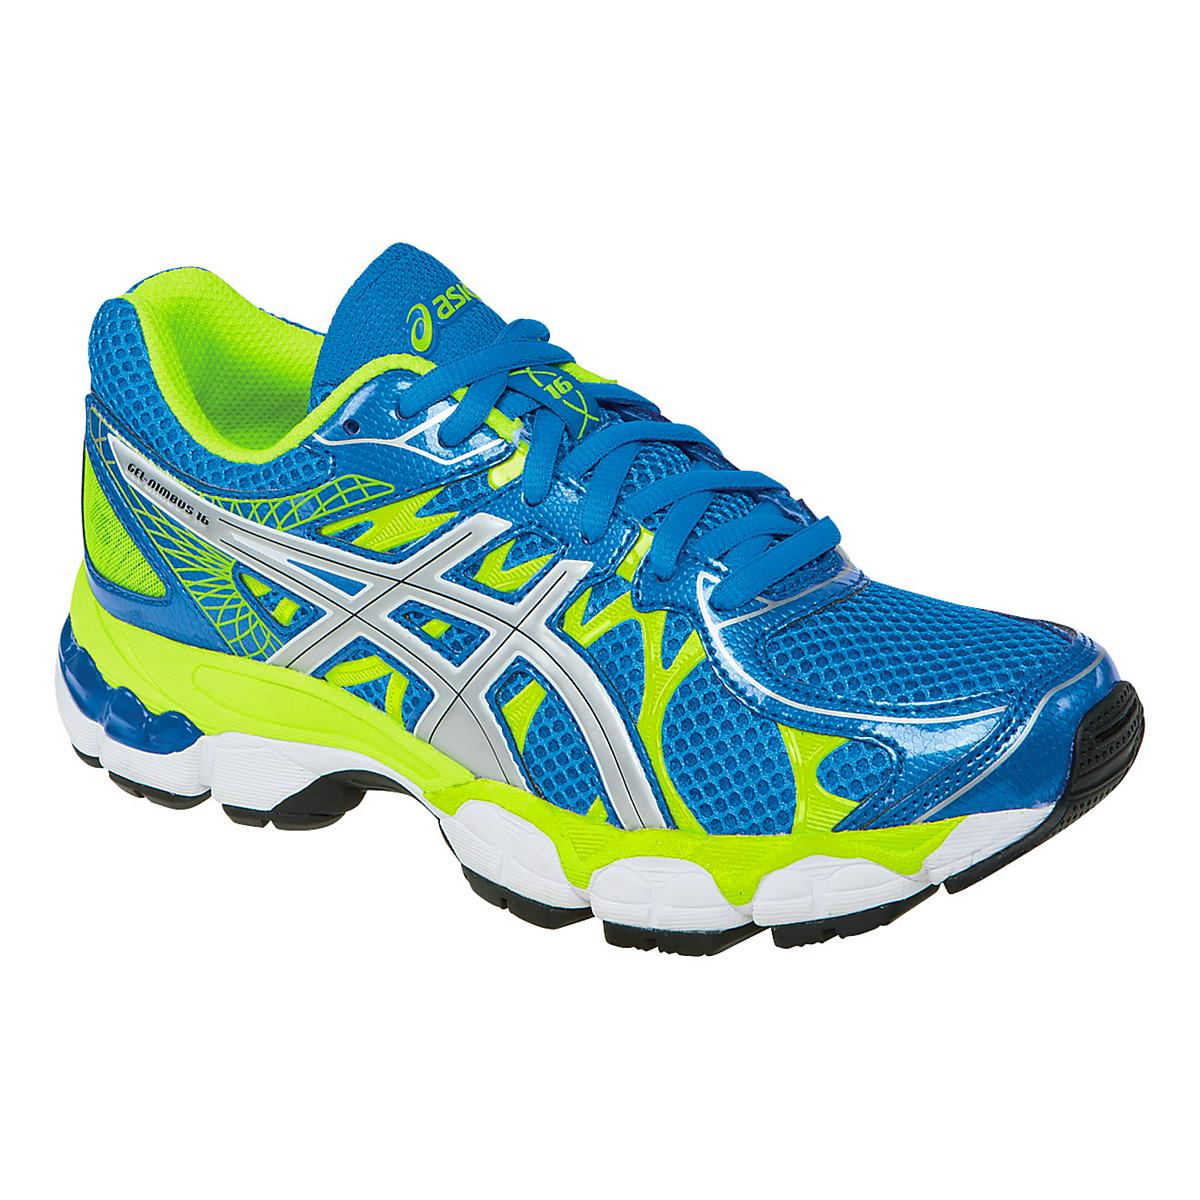 Kids ASICS GEL-Nimbus 16 Running Shoe at Road Runner Sports